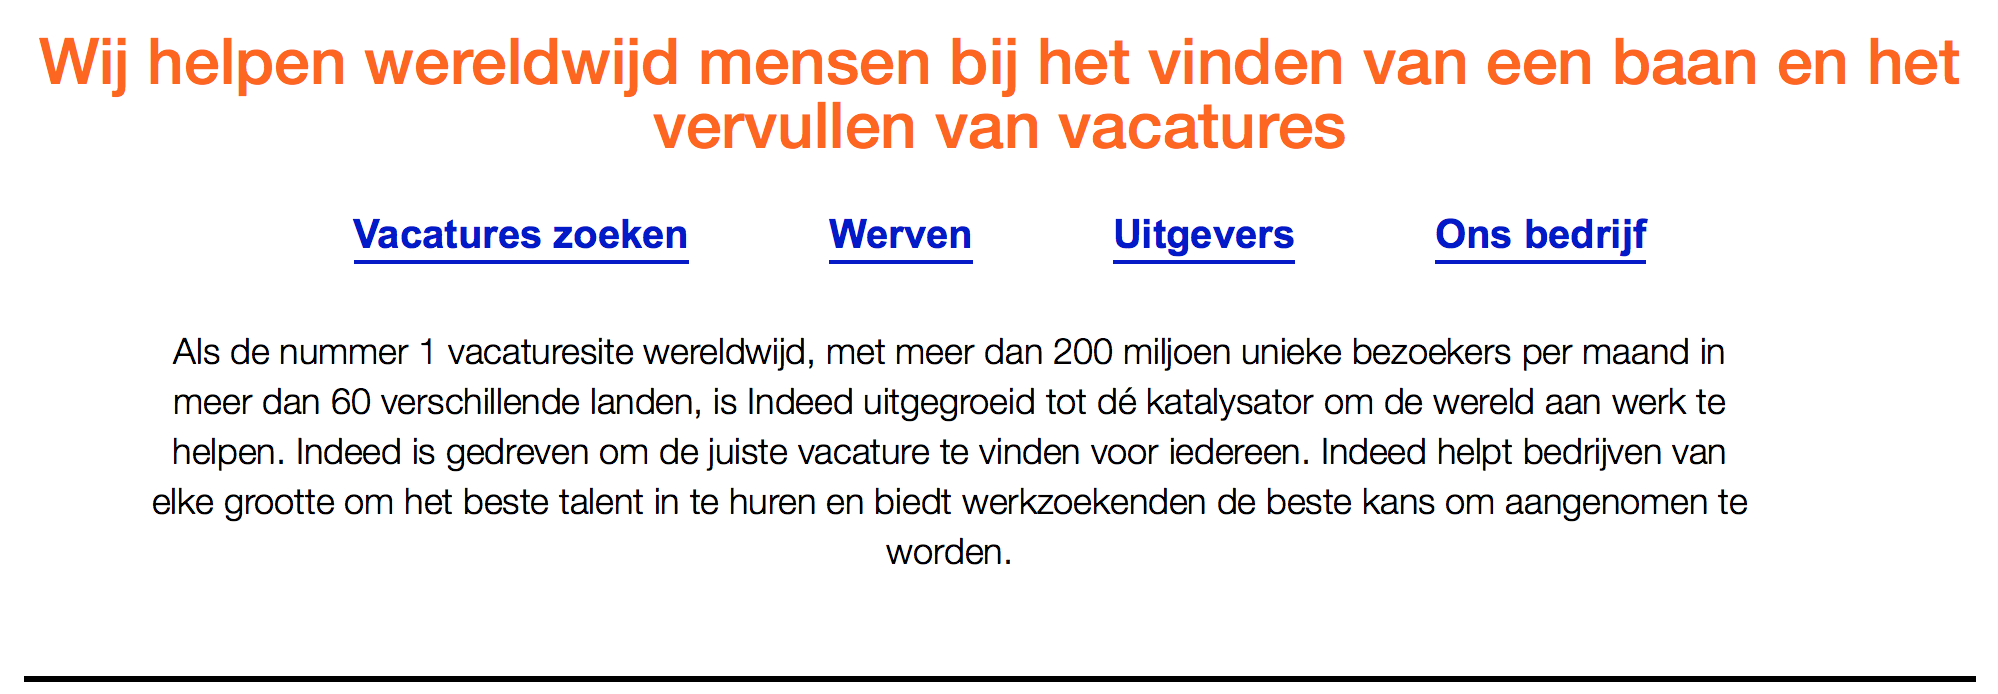 Is Indeed echt de nummer 1 vacaturesite?